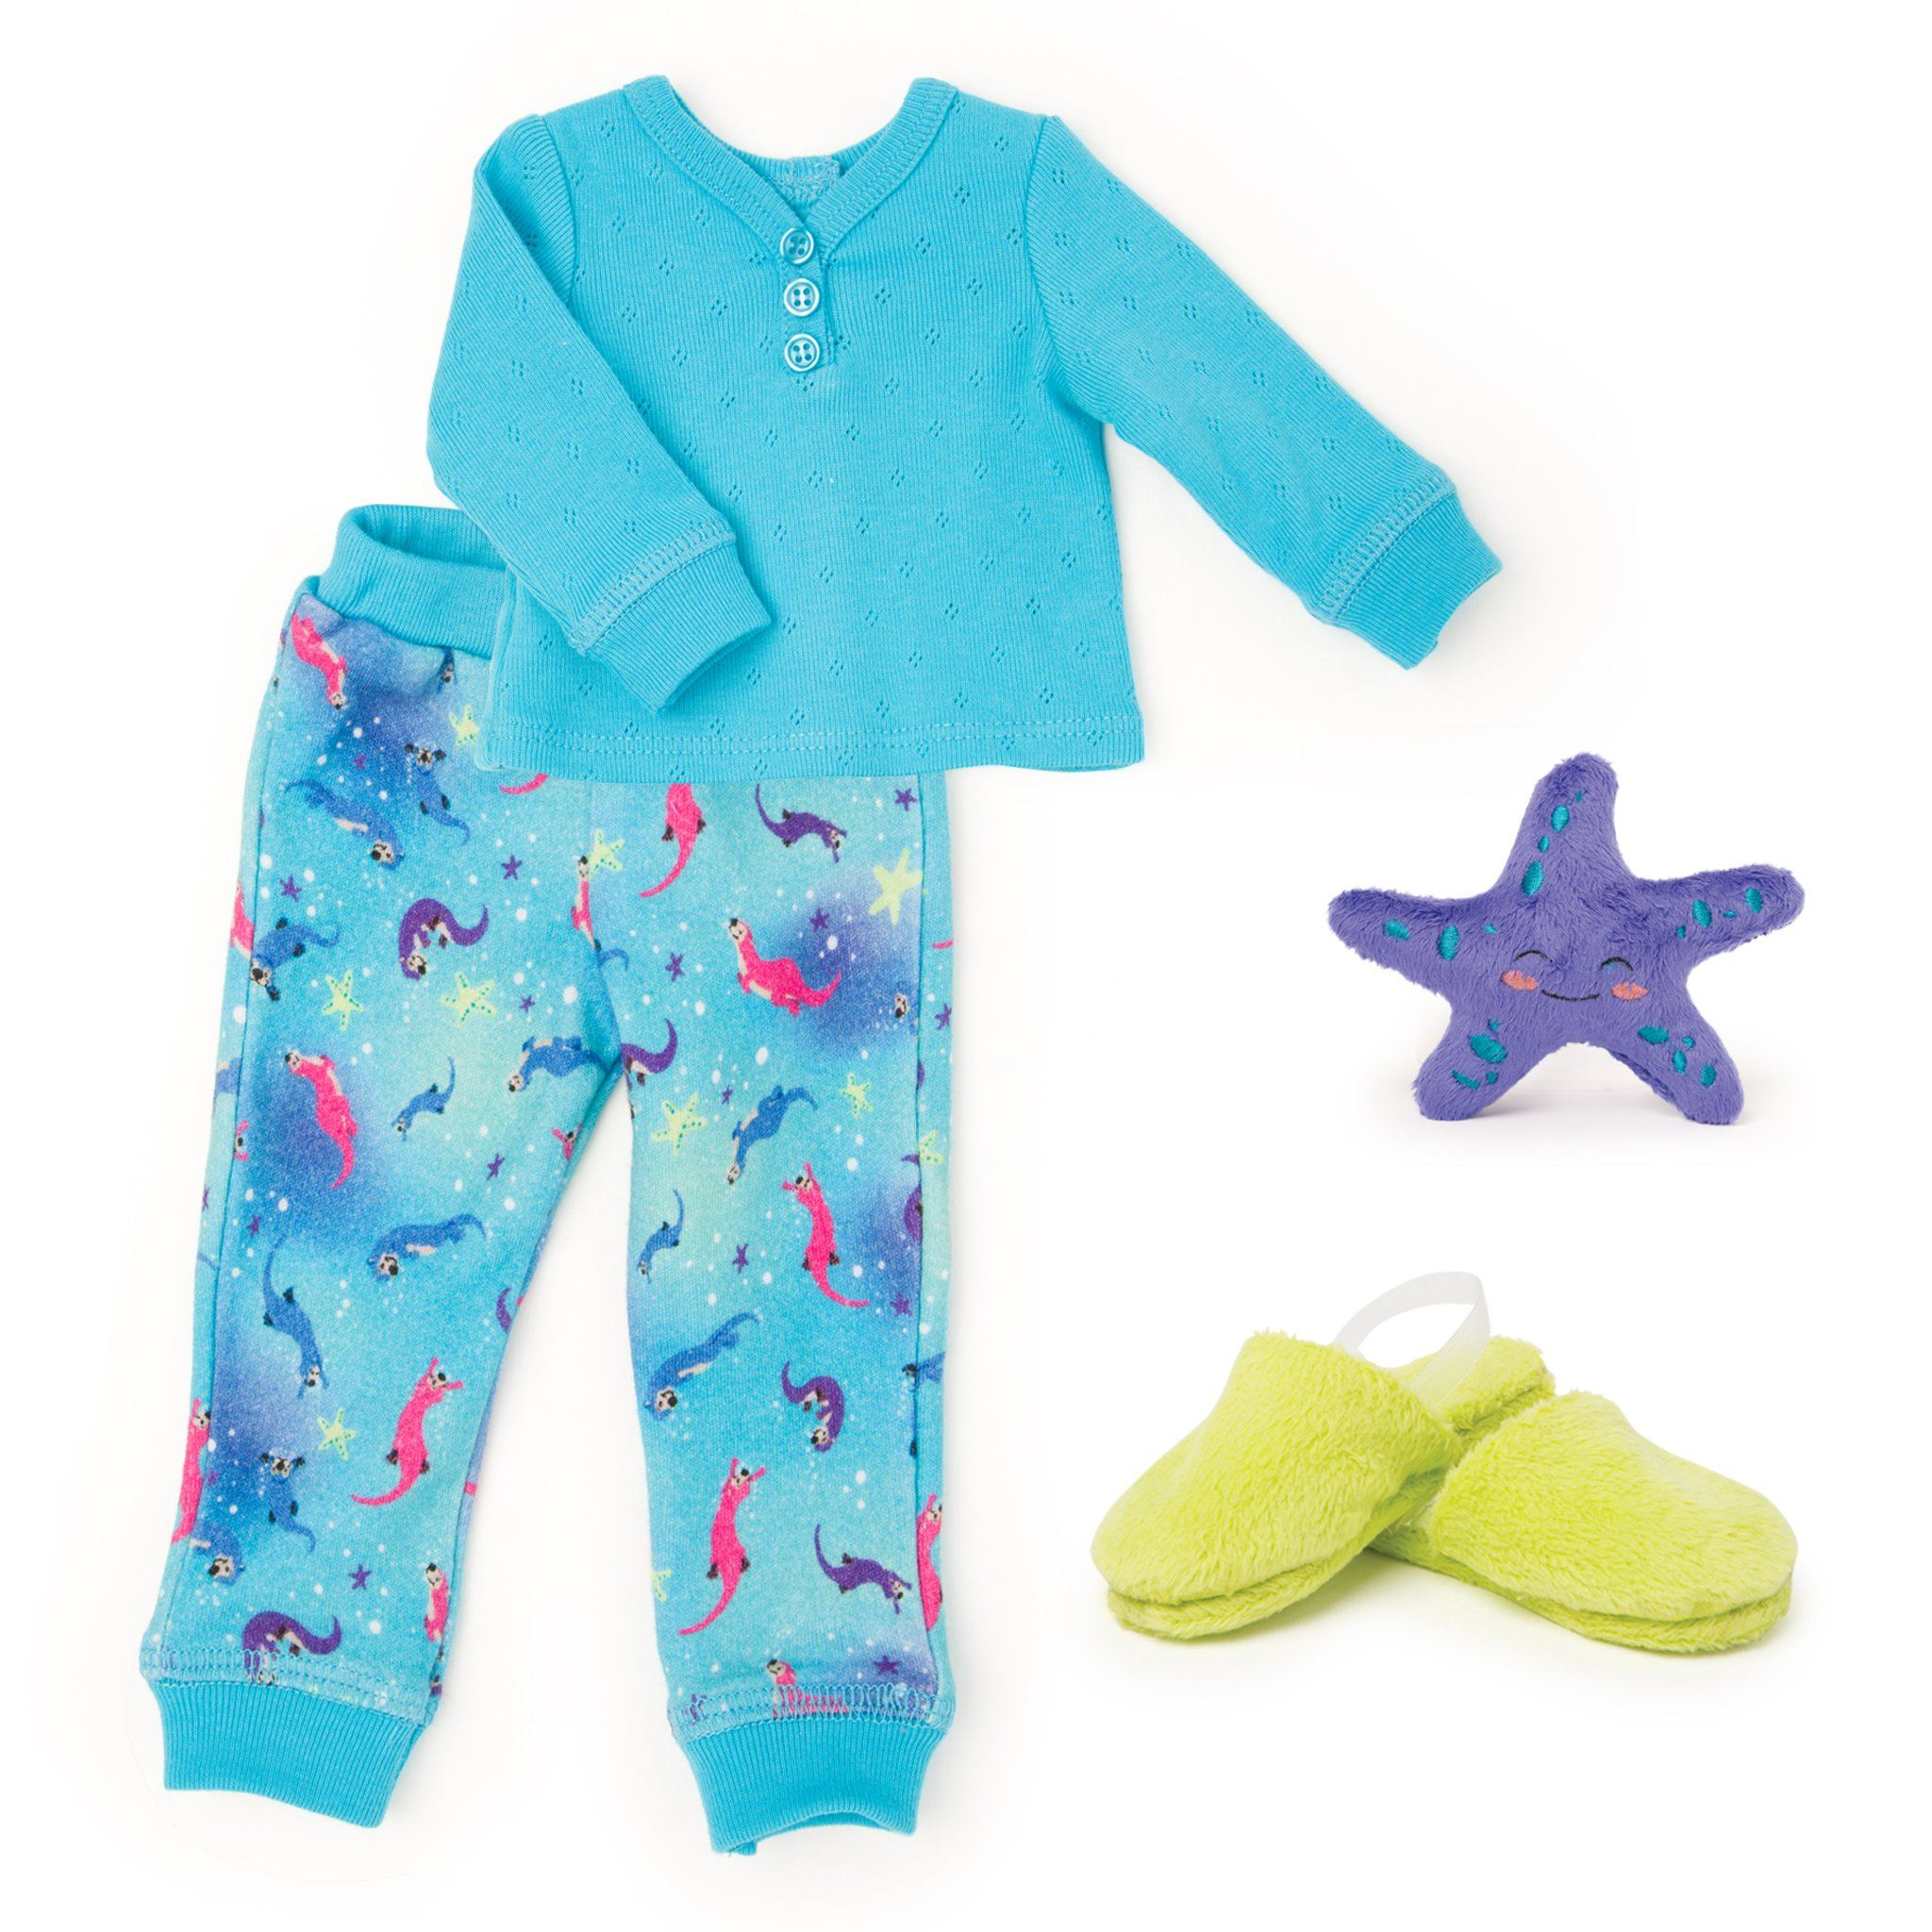 Sea Otter Sleepwear 2-piece pyjamas long-sleeve blue henley, sea otter print blue PJ pants, bright green fuzzy slippers and a plush purple sea star fit all 18 inch dolls.